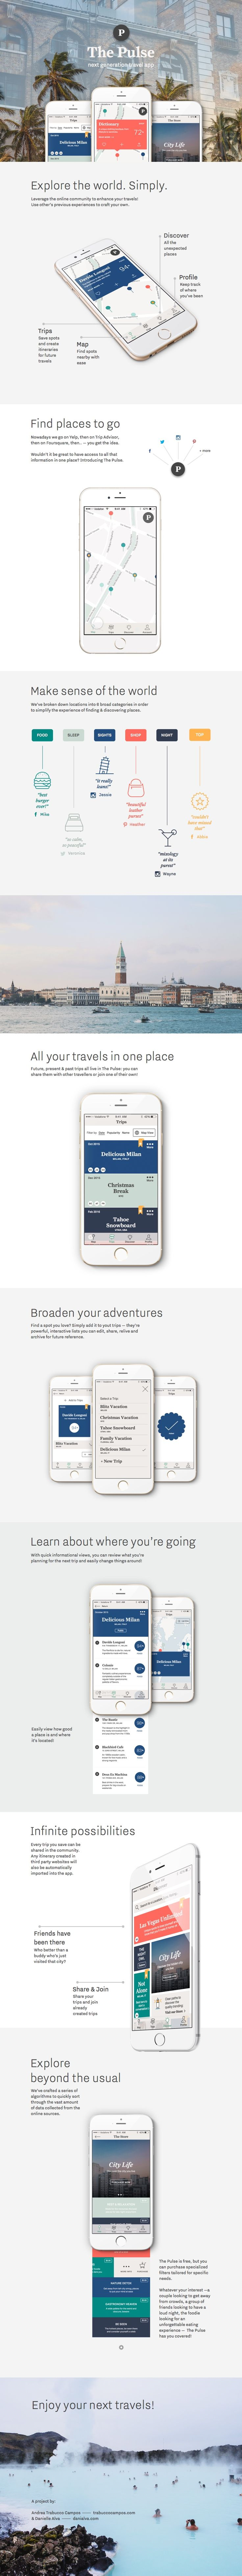 The Pulse travel app by Andrea A. Trabucco-Campos + Danielle Alva #ux #ui…